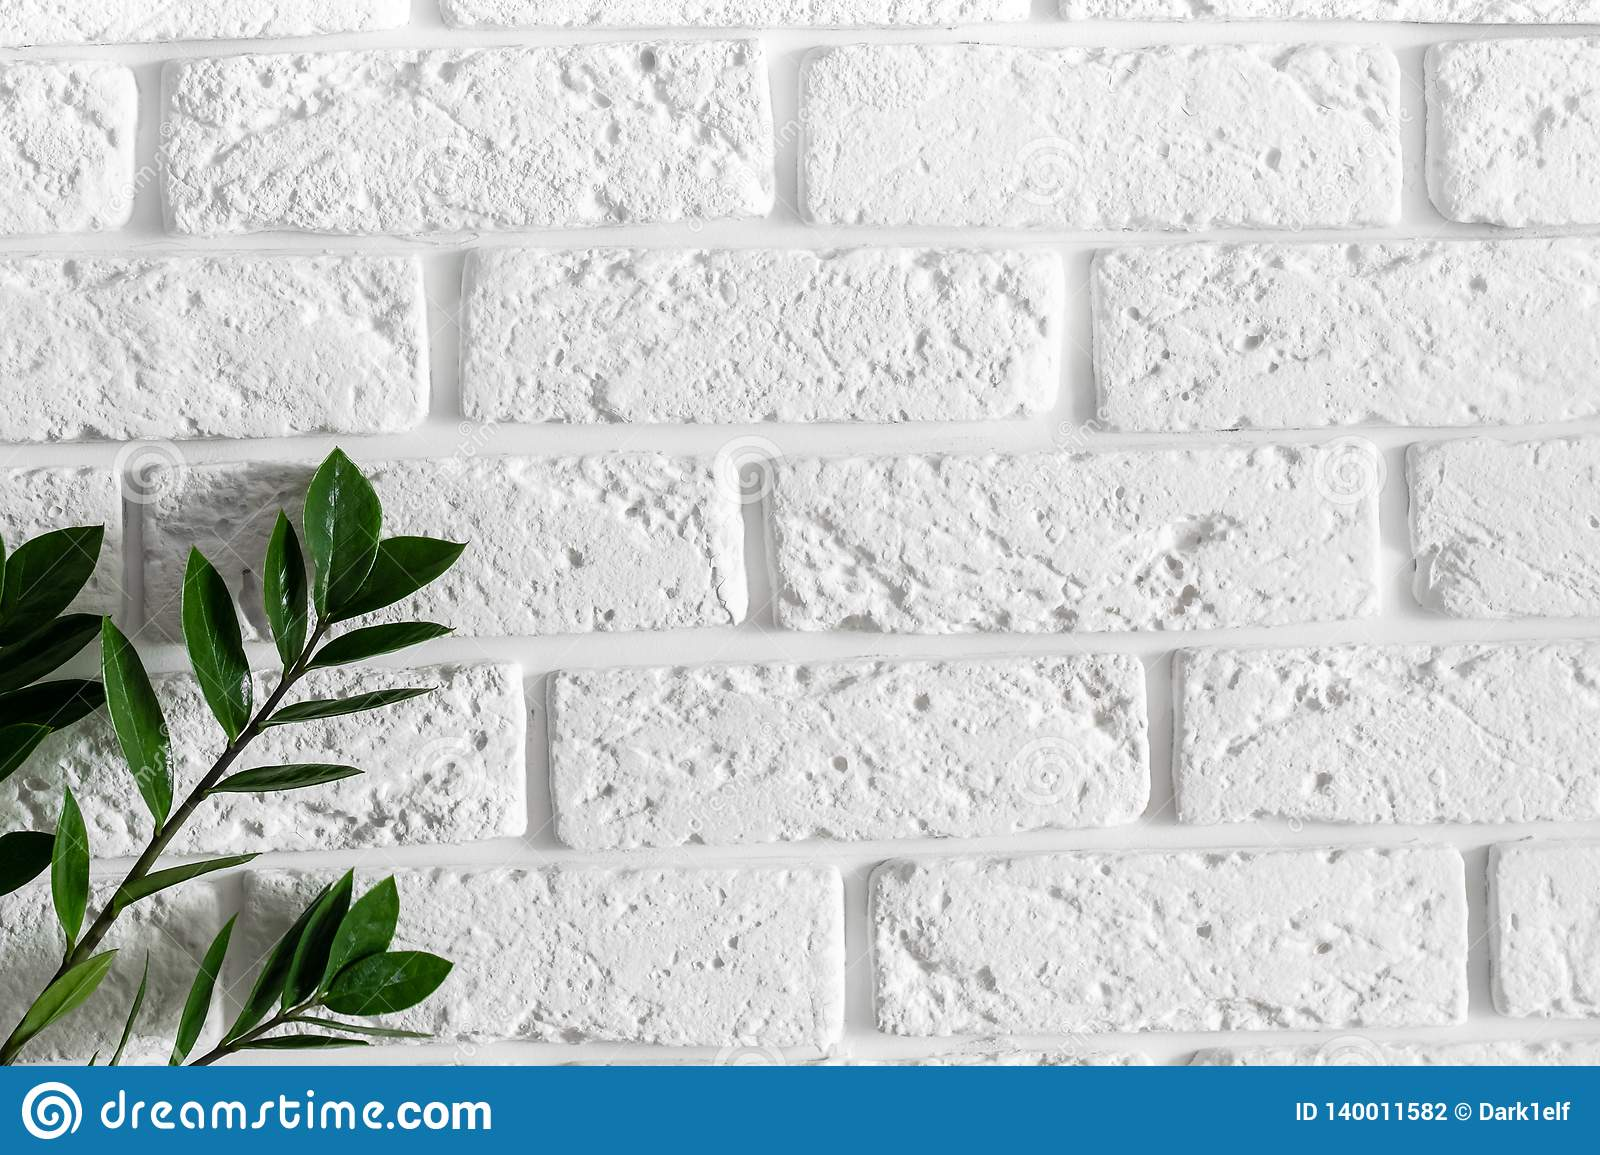 Green Plant Branch On White Brick Wall Modern Home Interior Design Background Stock Photo Image Of Color Interior 140011582